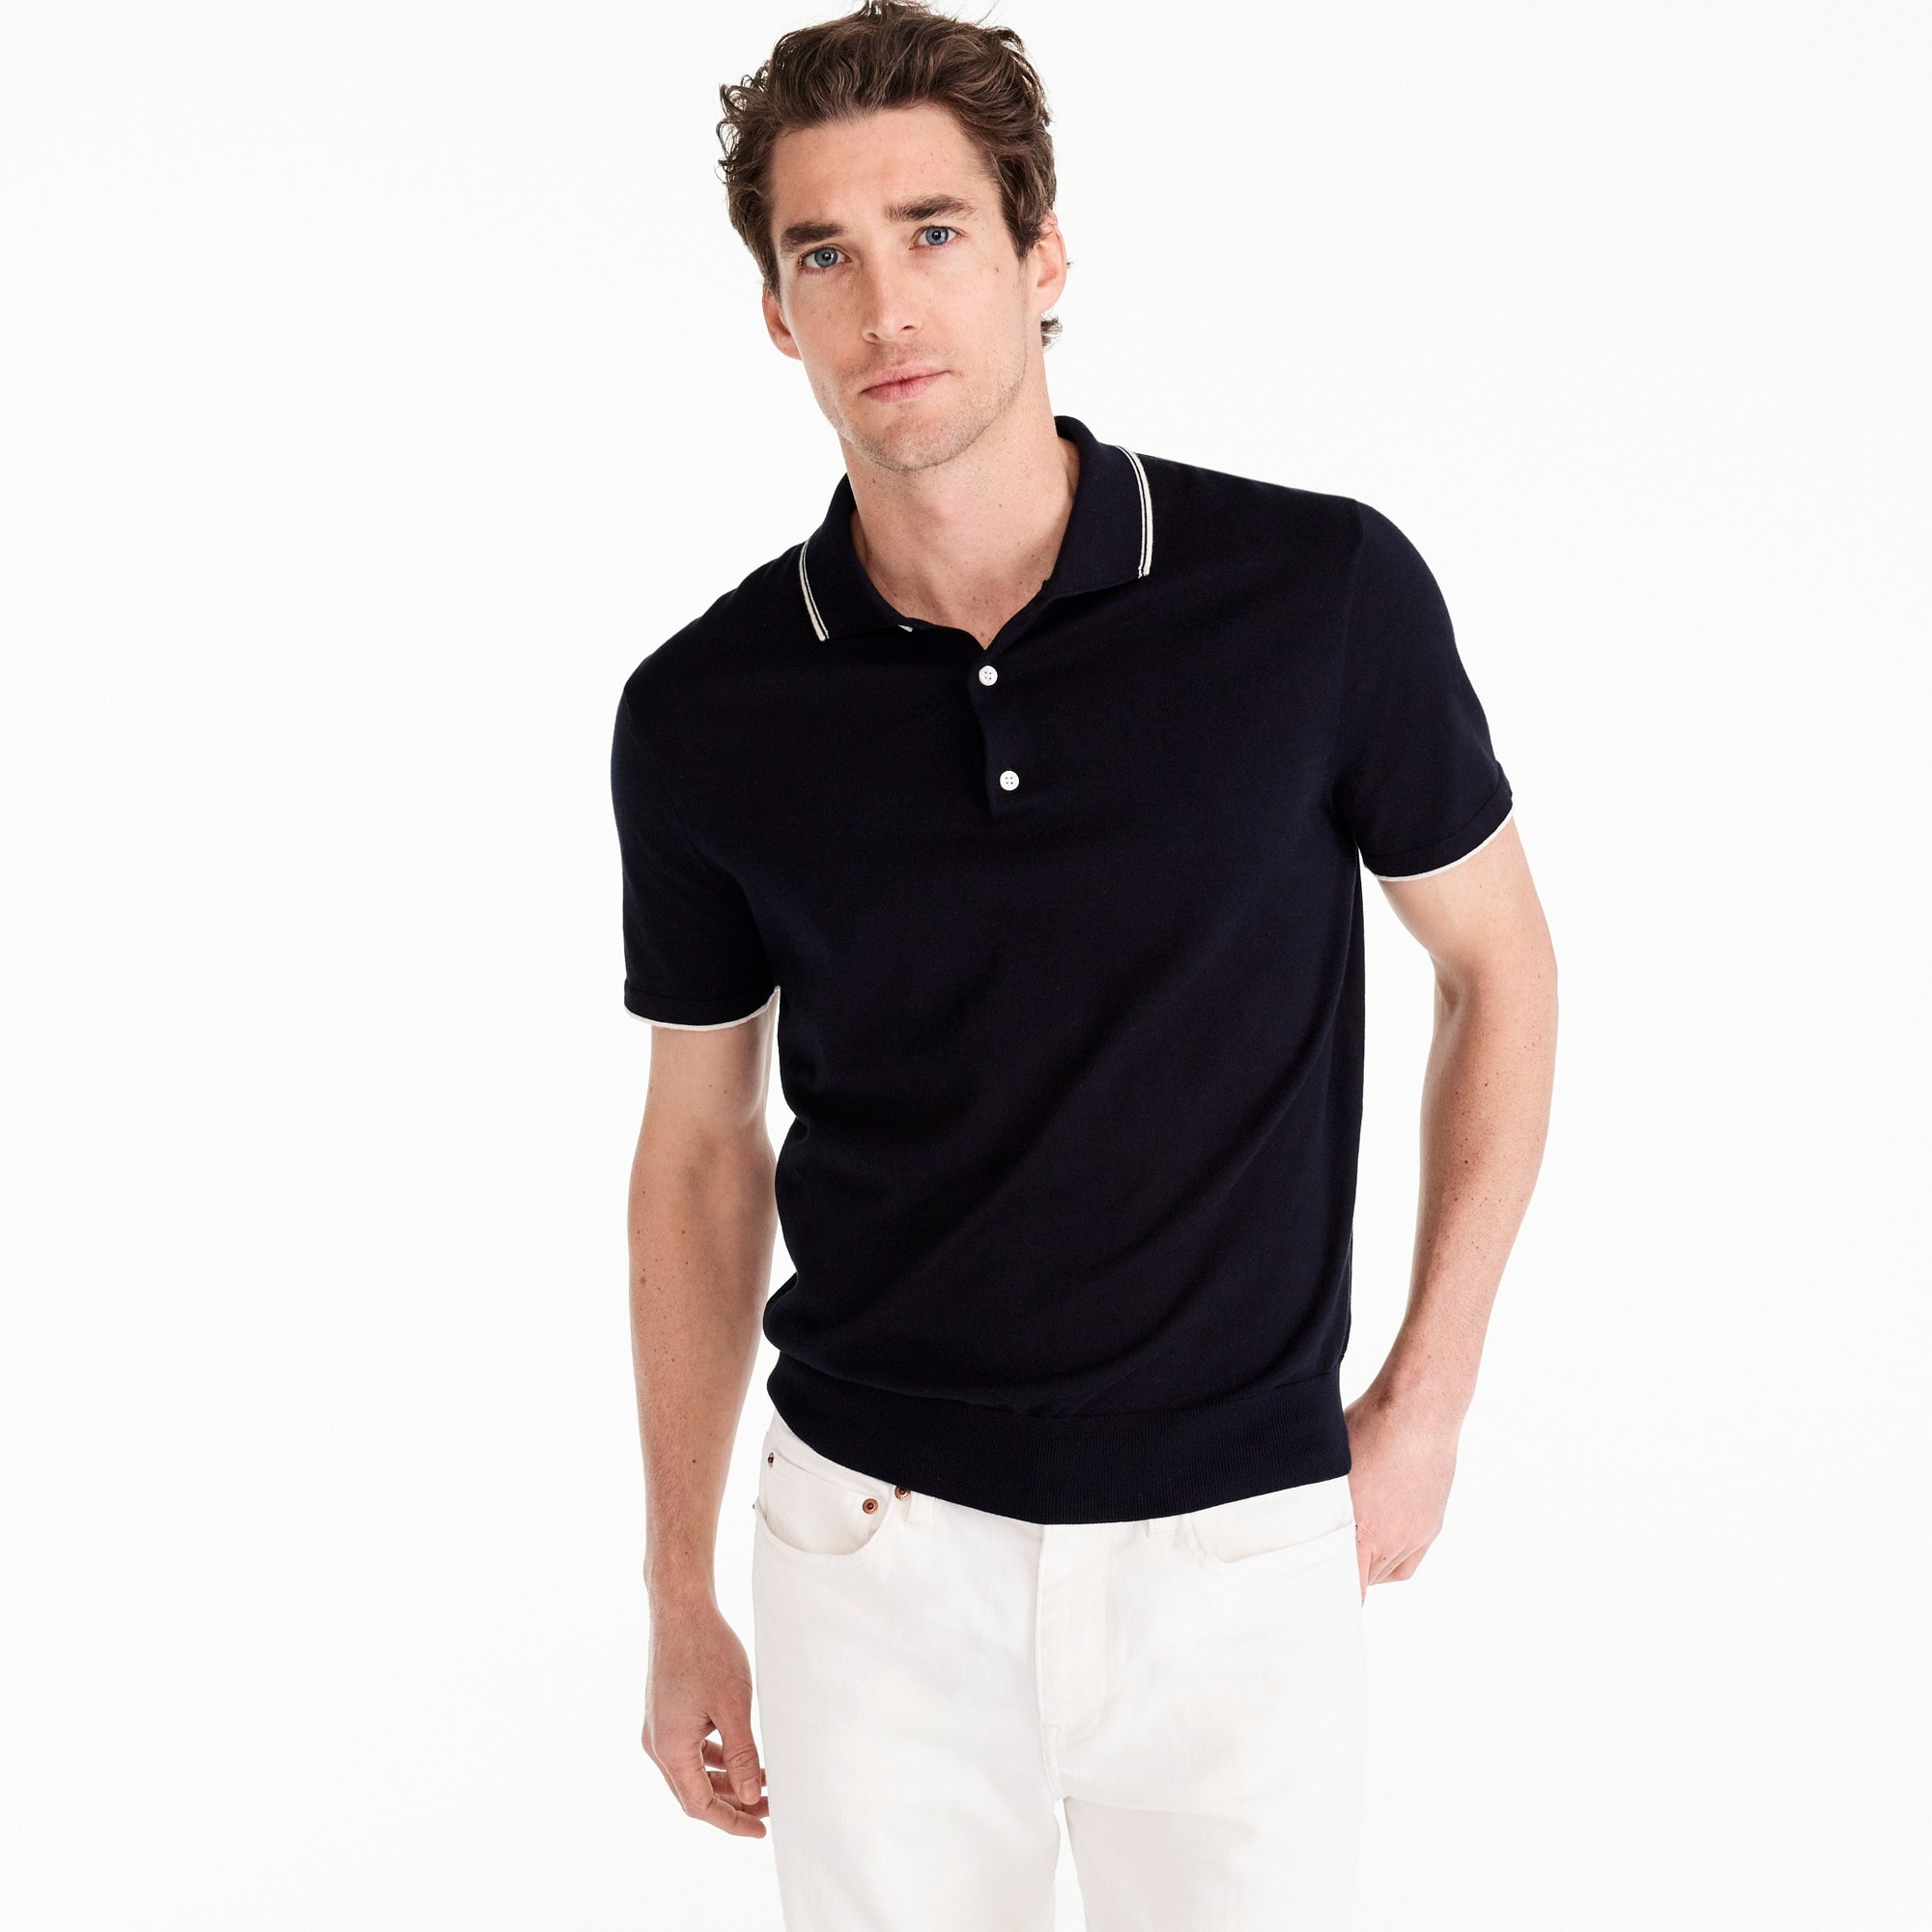 mens Pima cotton short-sleeve tipped sweater polo